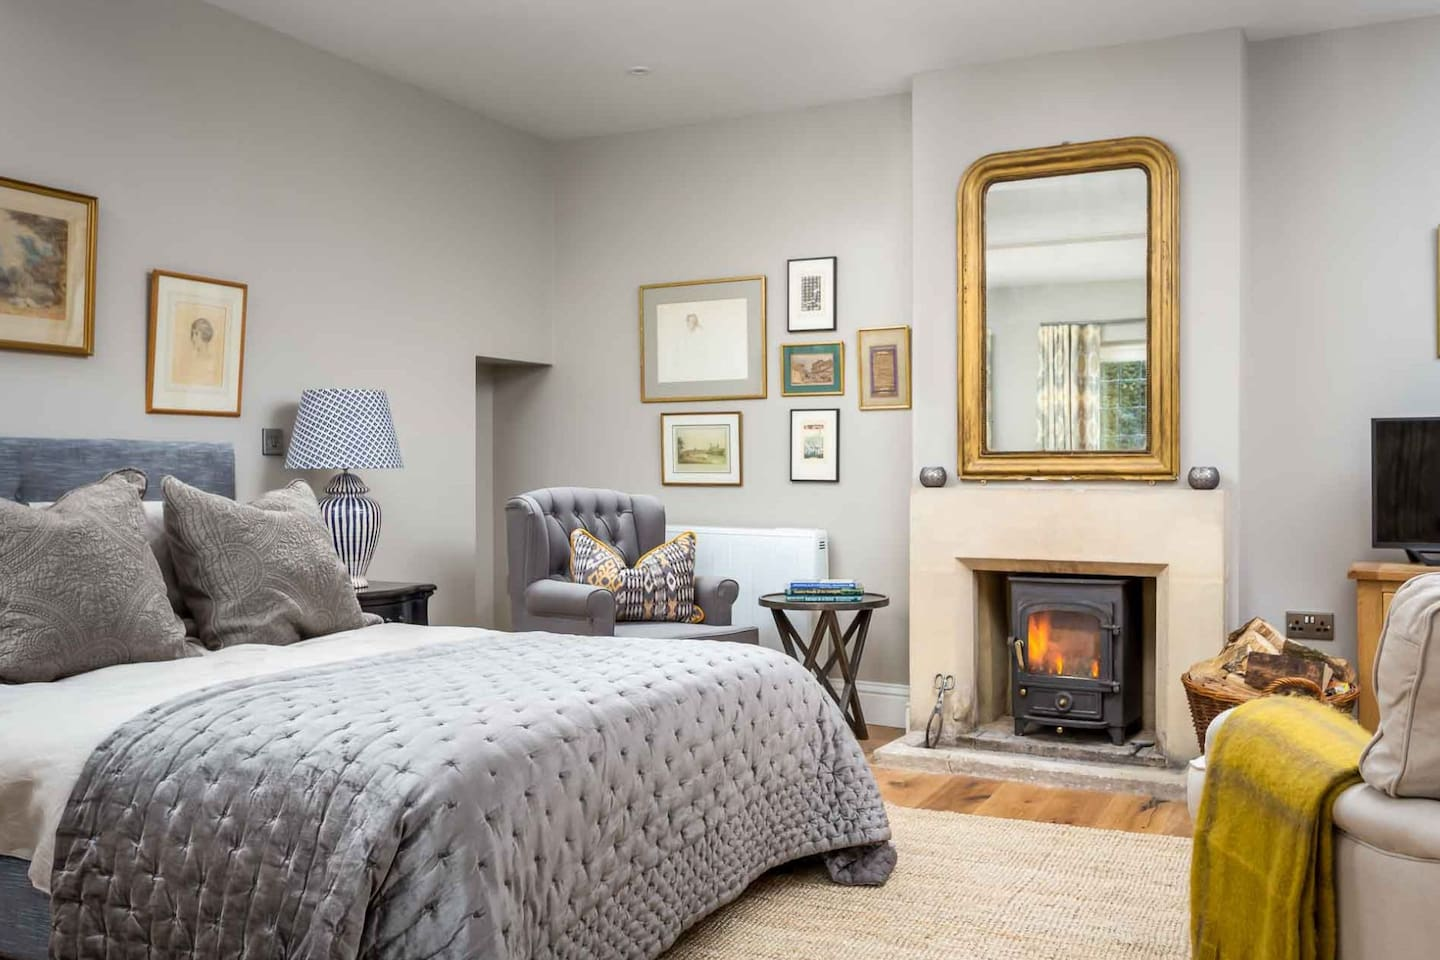 The king size bed is next to the fabulous roaring wood burner